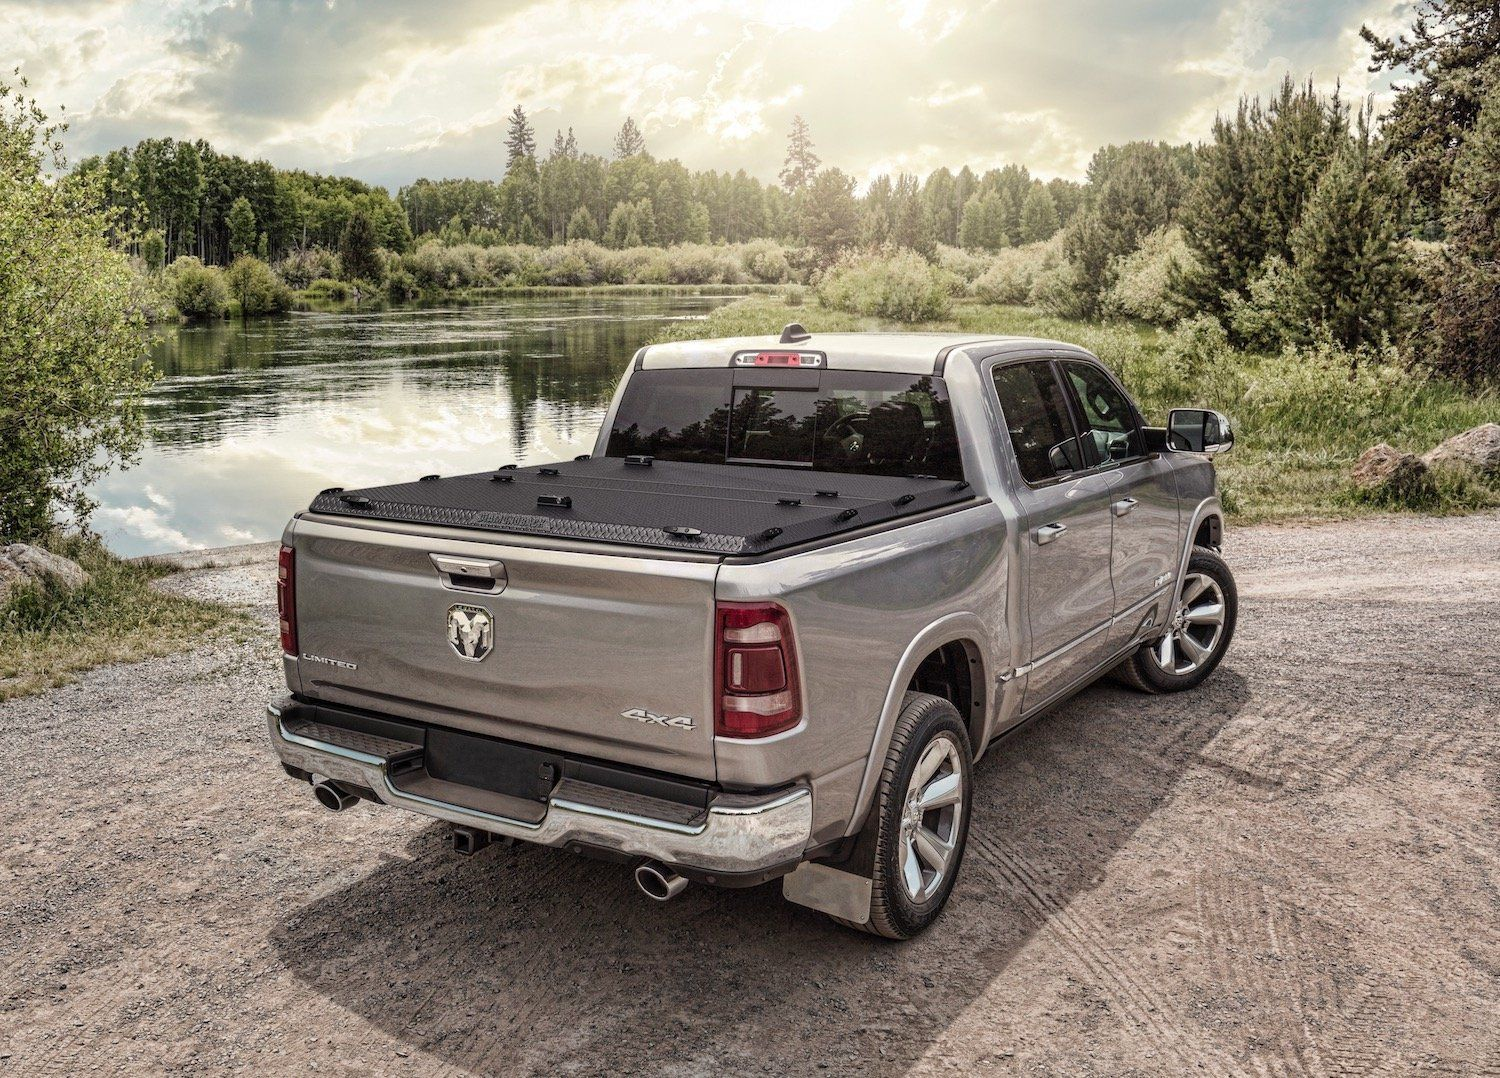 The best heavyduty hard tonneau covers built in the USA